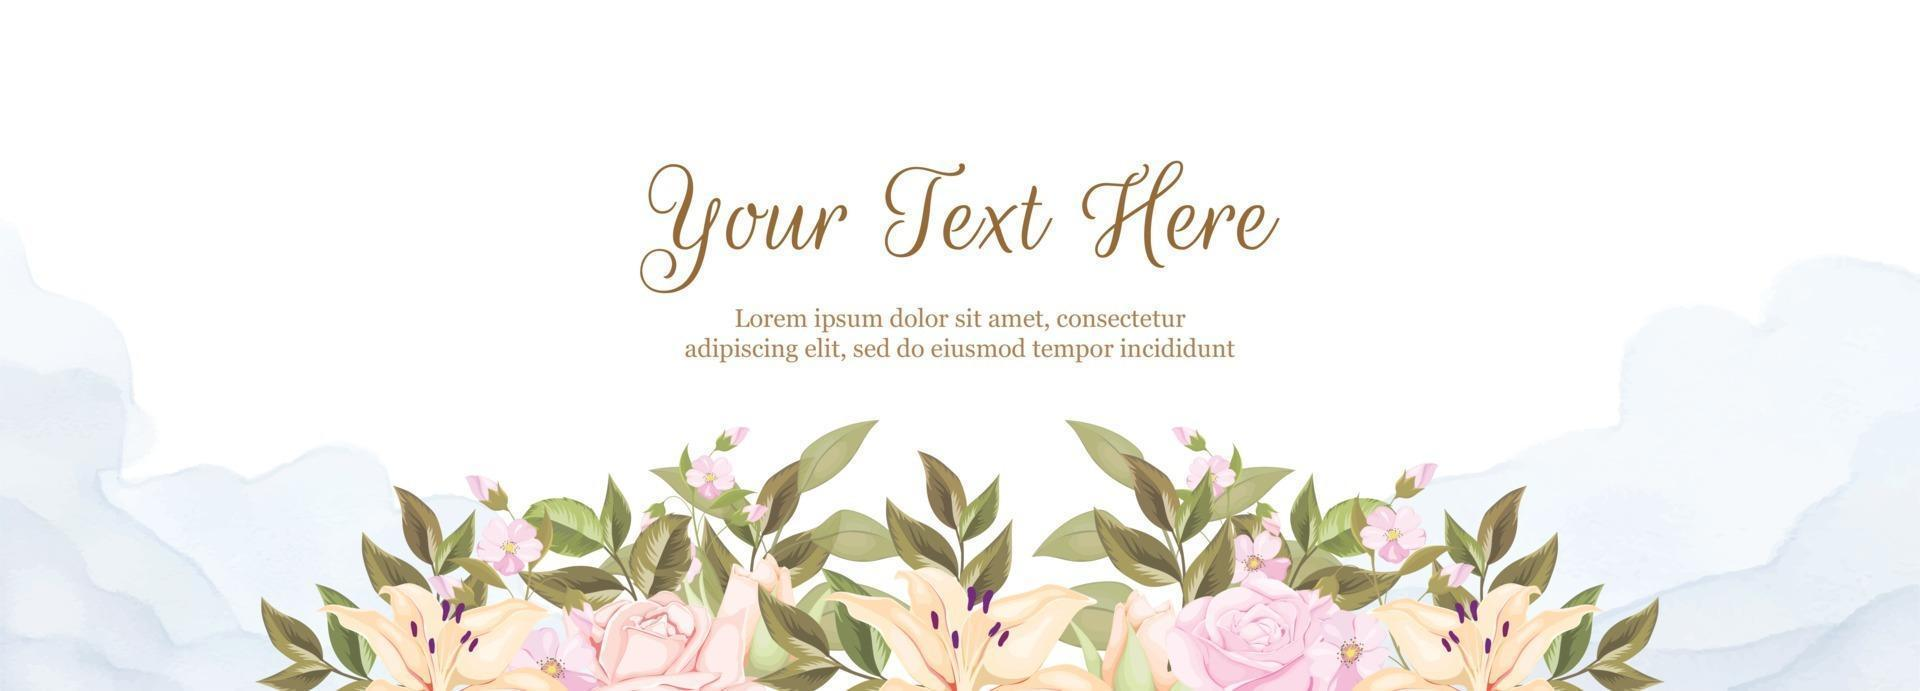 Floral Banner Background Template for Wedding Decoration vector